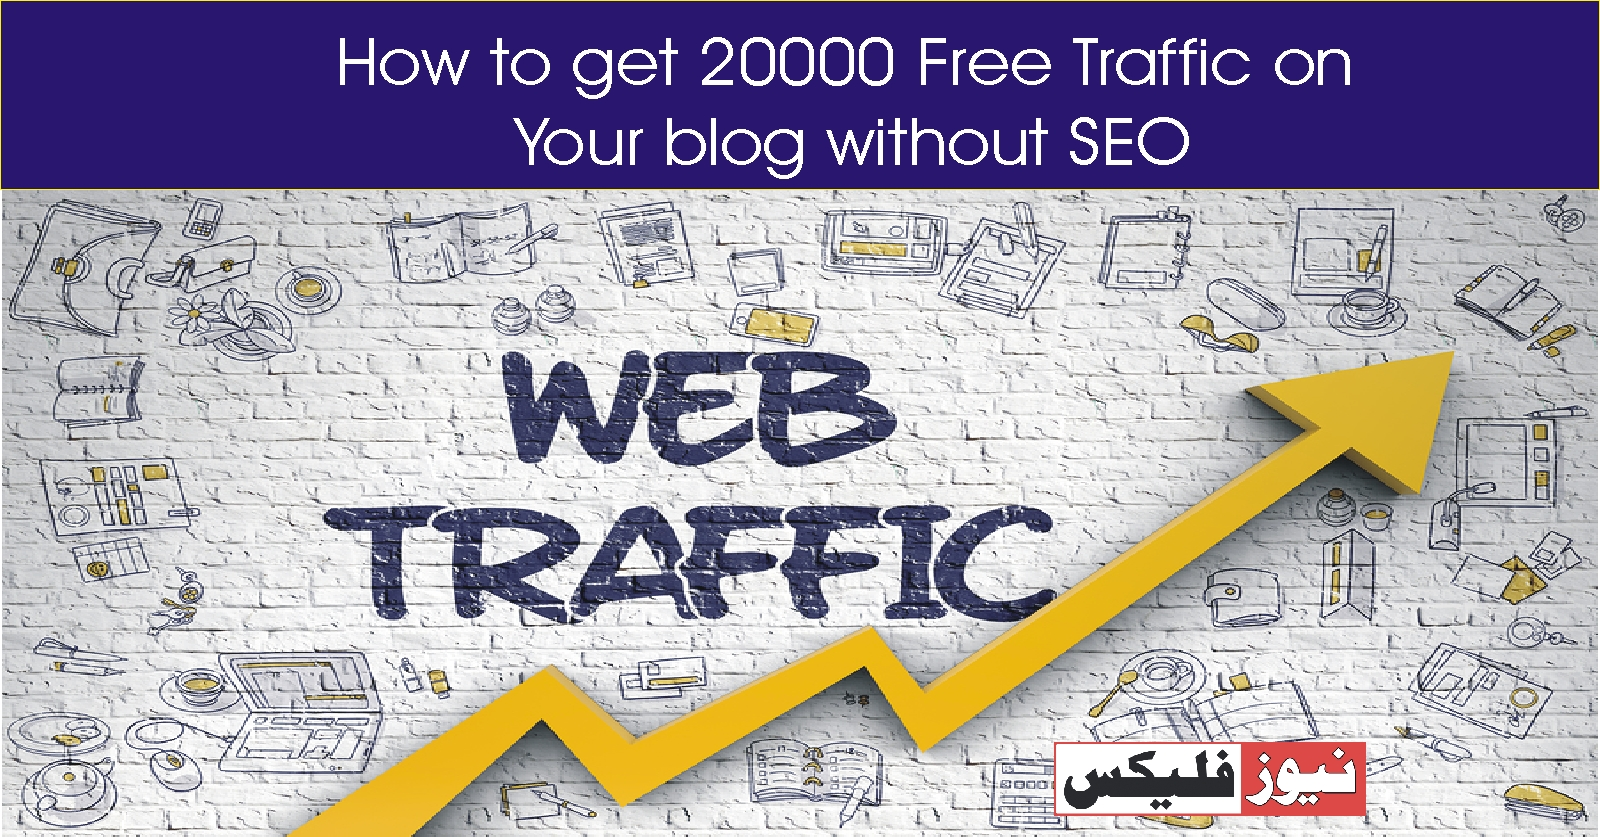 ؟How to get 20000 Free Traffic on Your blog without SEO